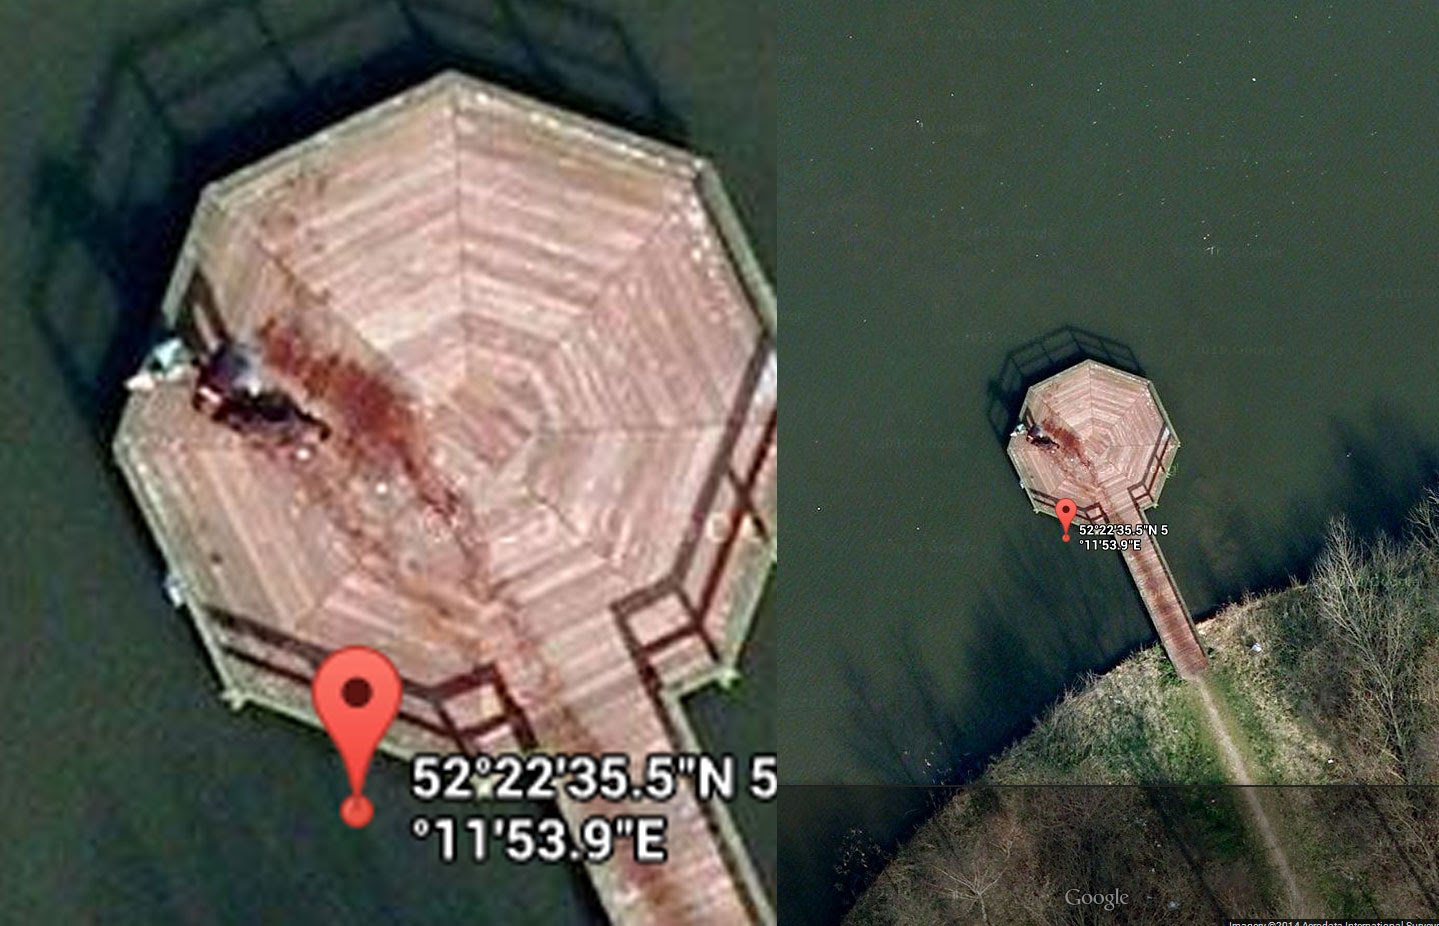 Google Maps Captures Guy Dumping Body Page 1